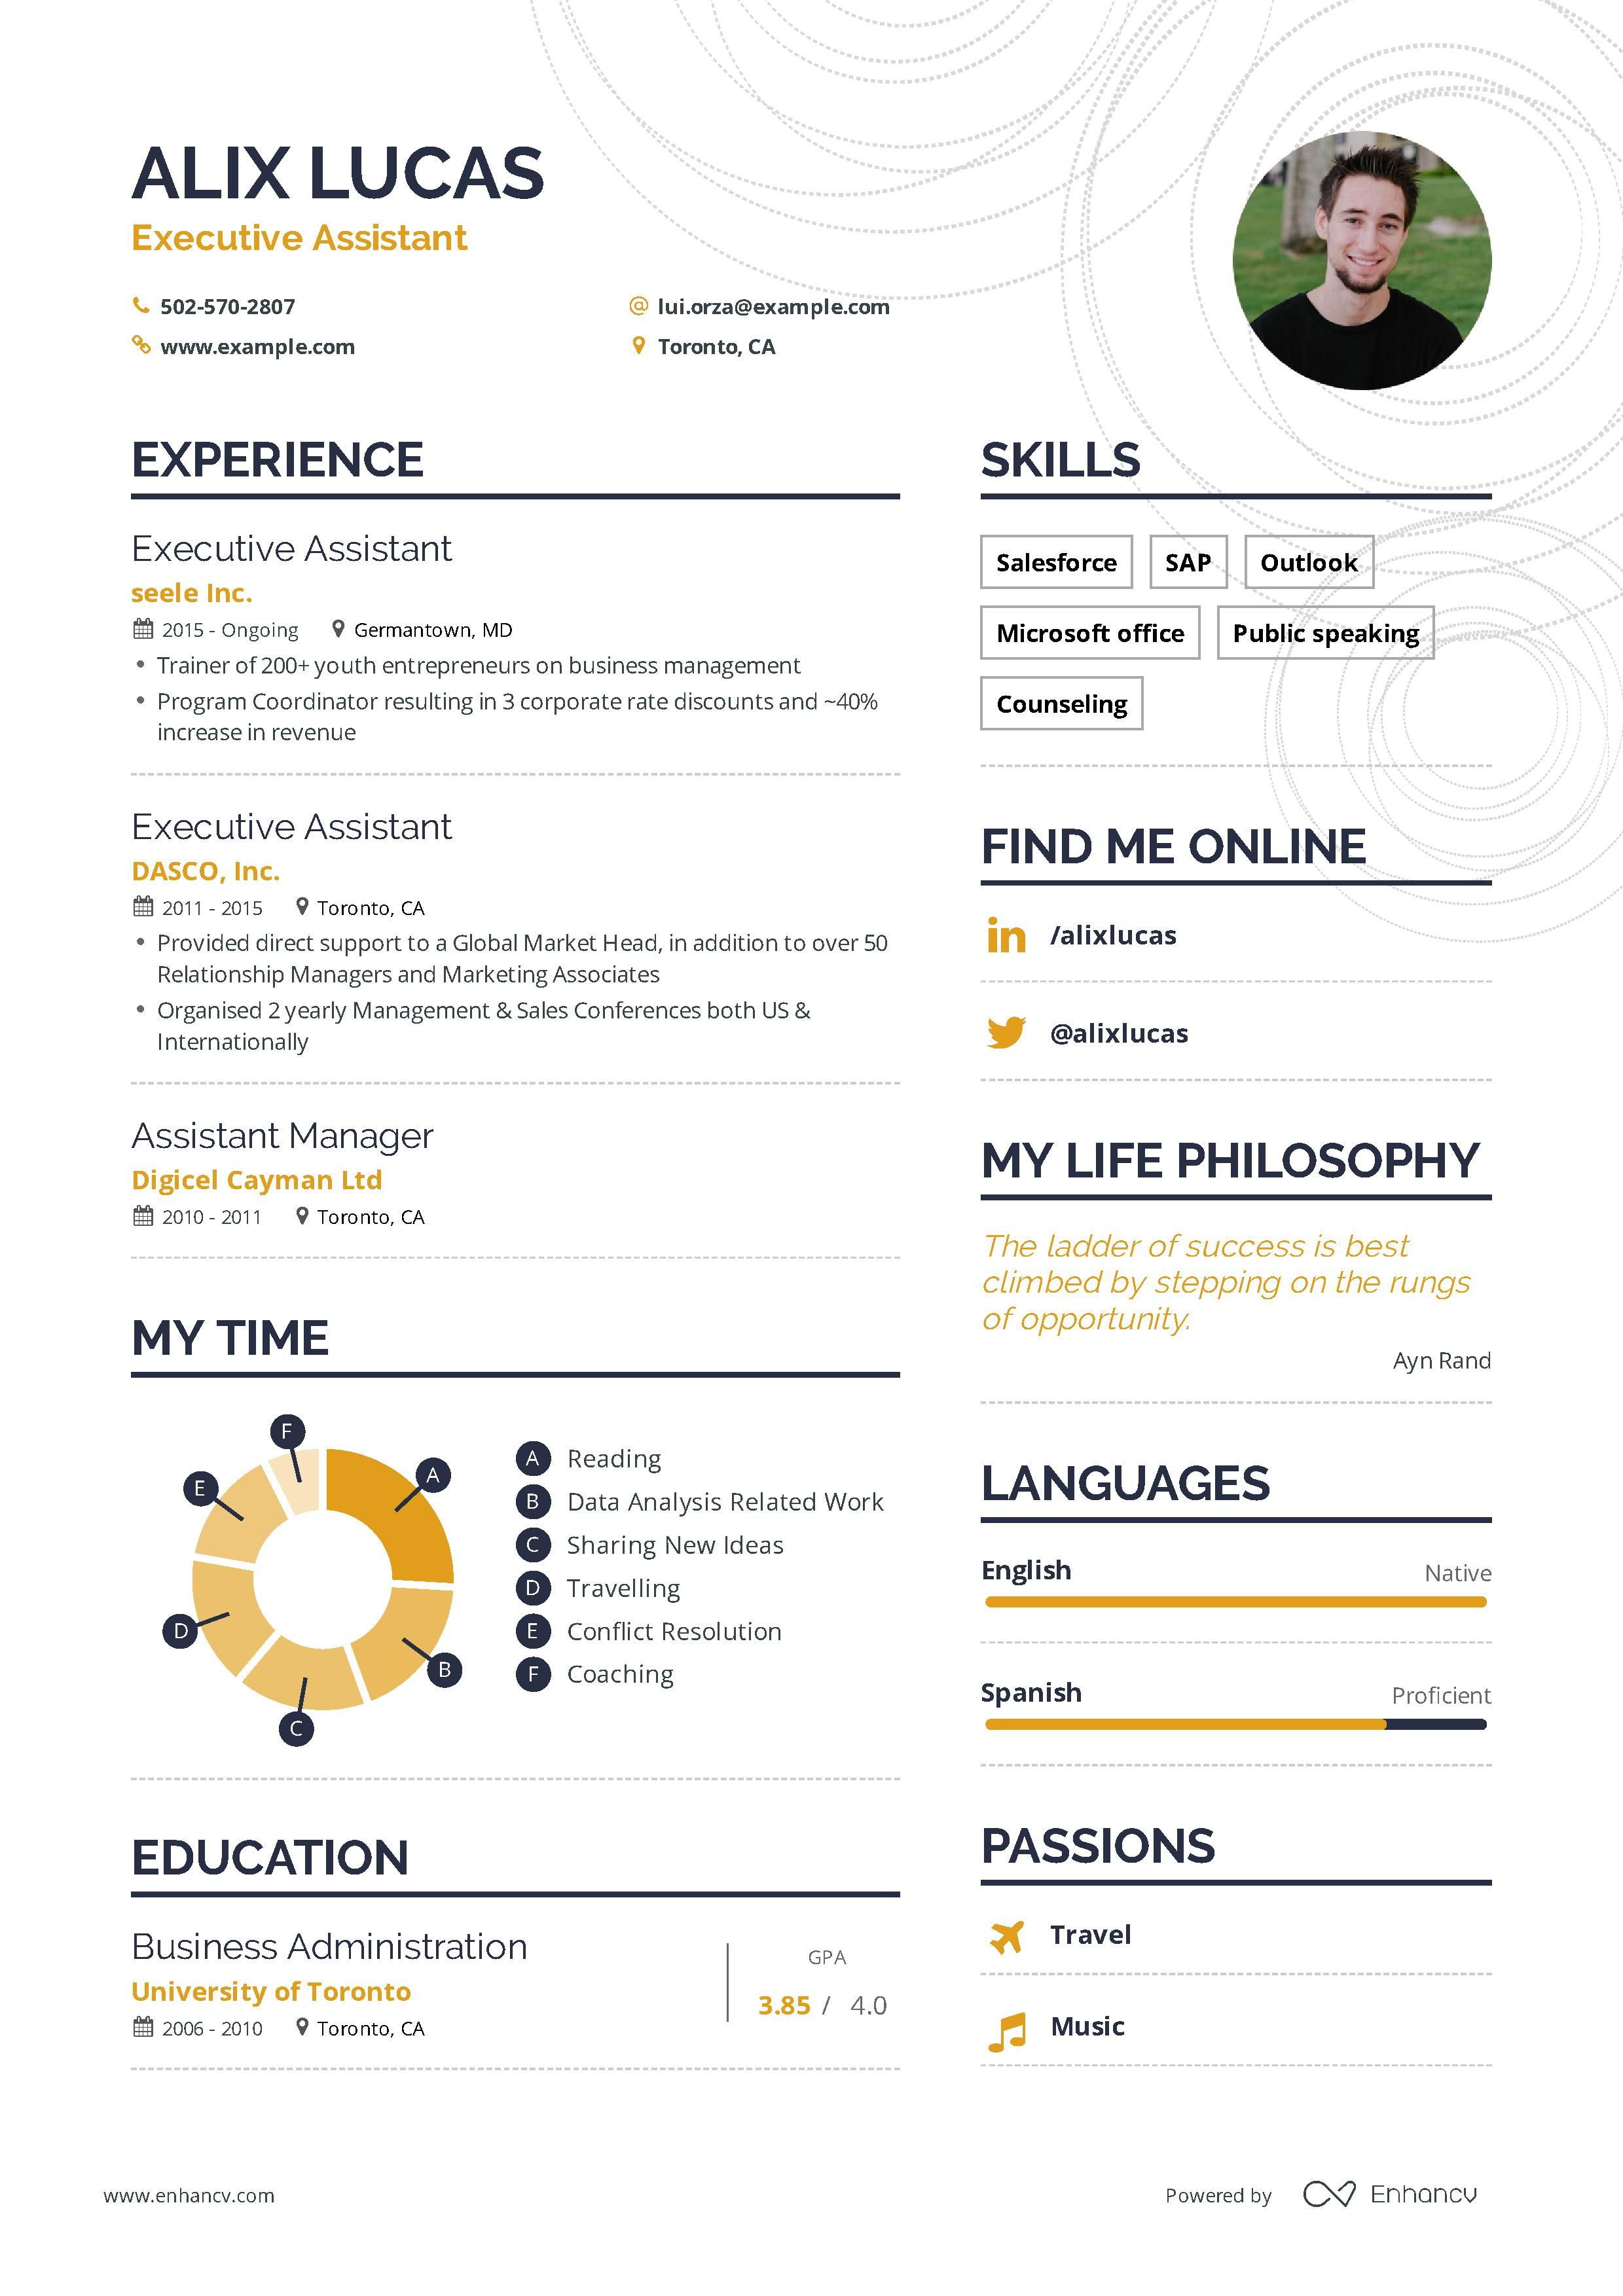 Executive assistant resume samples and writing guide for